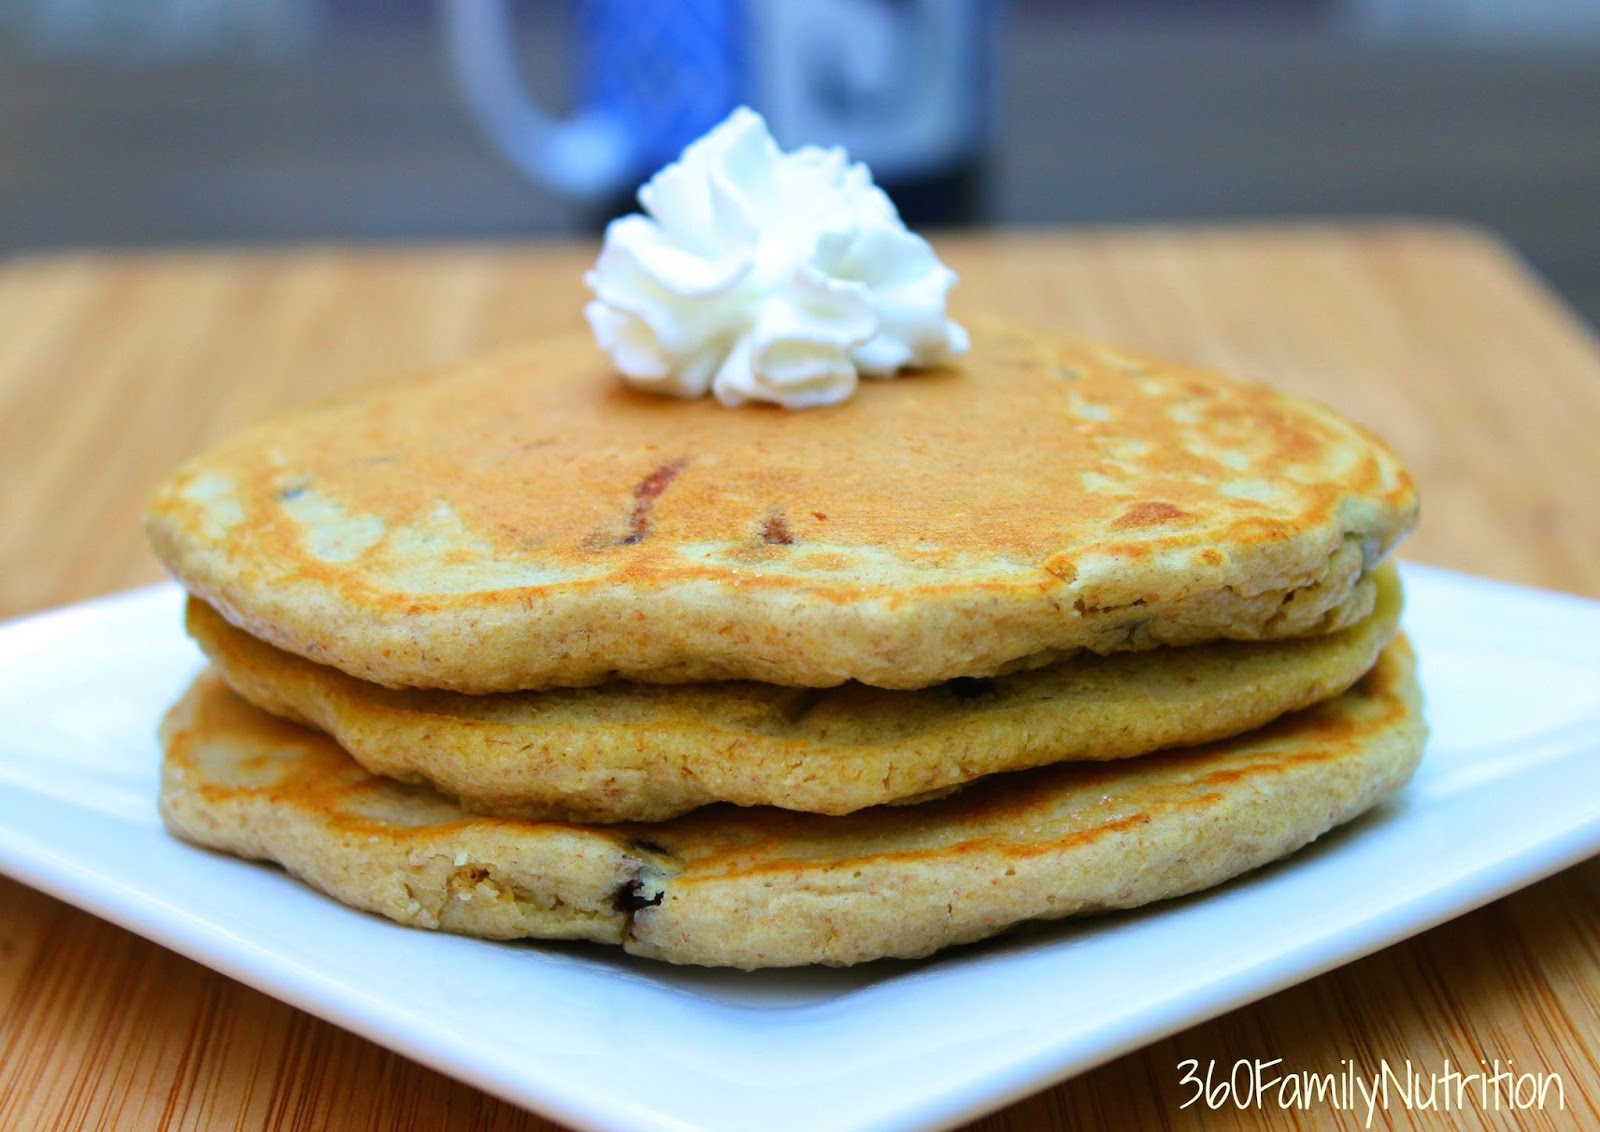 How Many Calories Does Chocolate Chip Pancakes Have